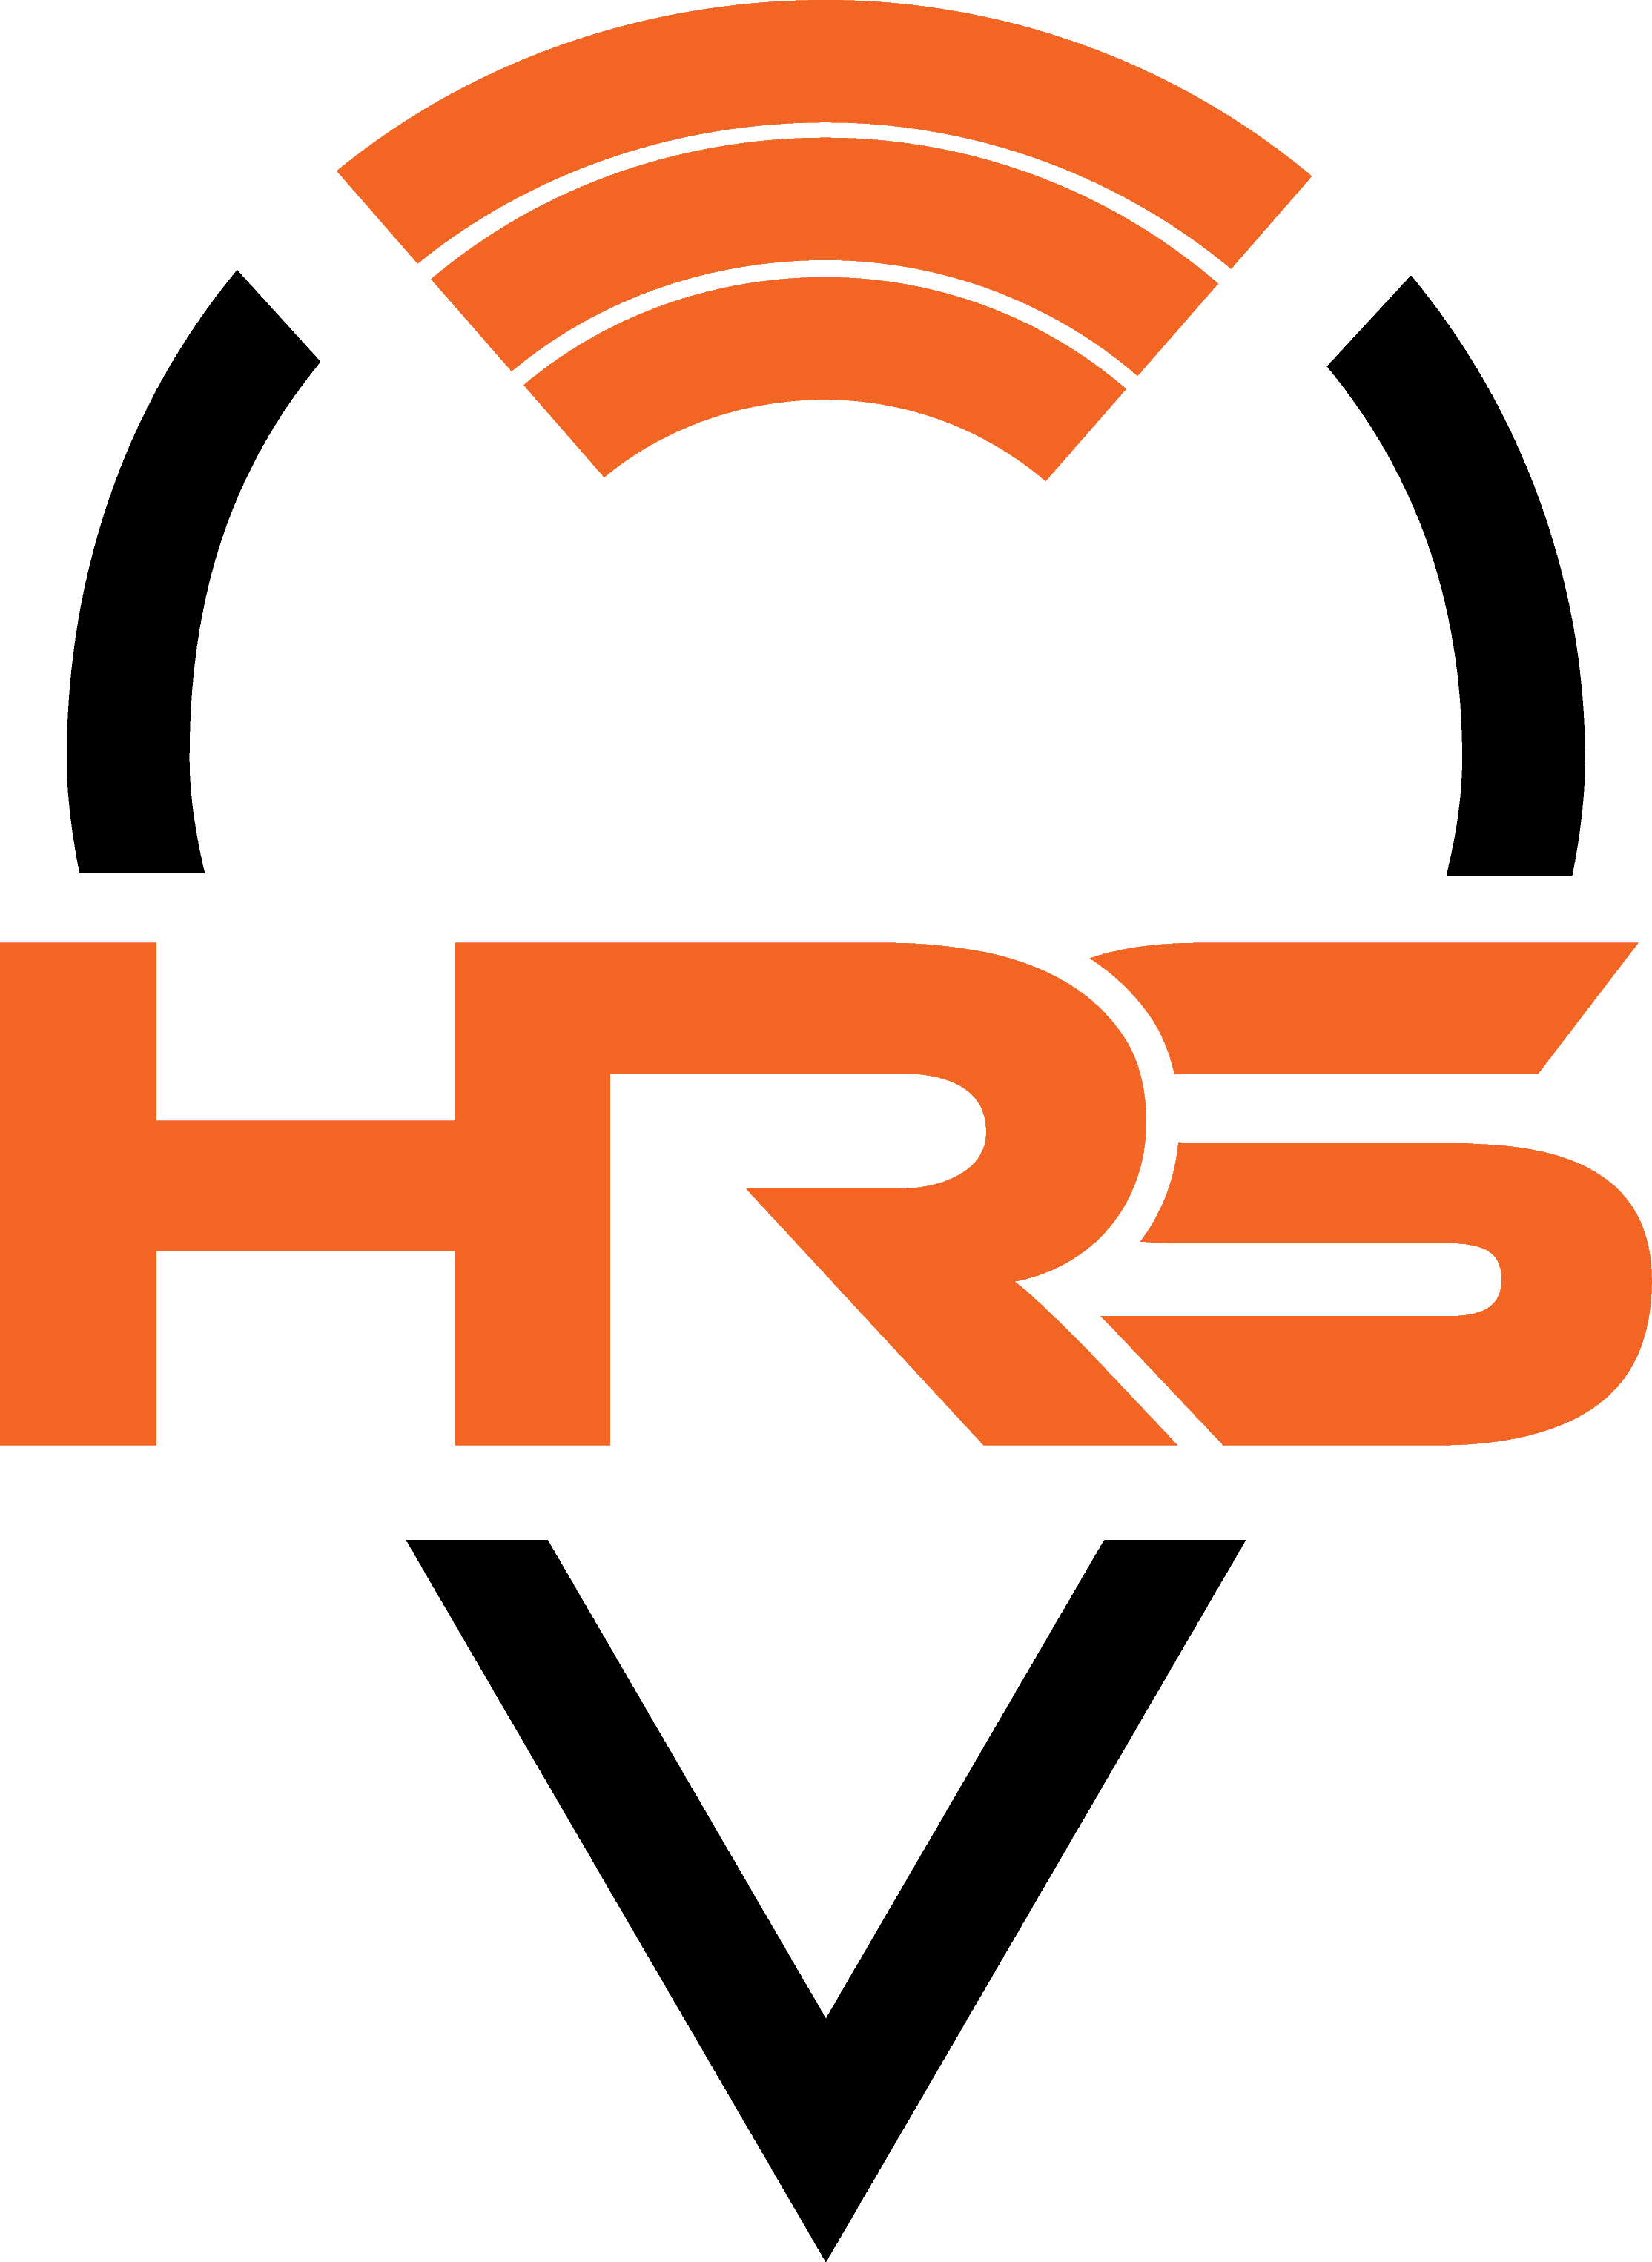 HRS Orange - Corporate